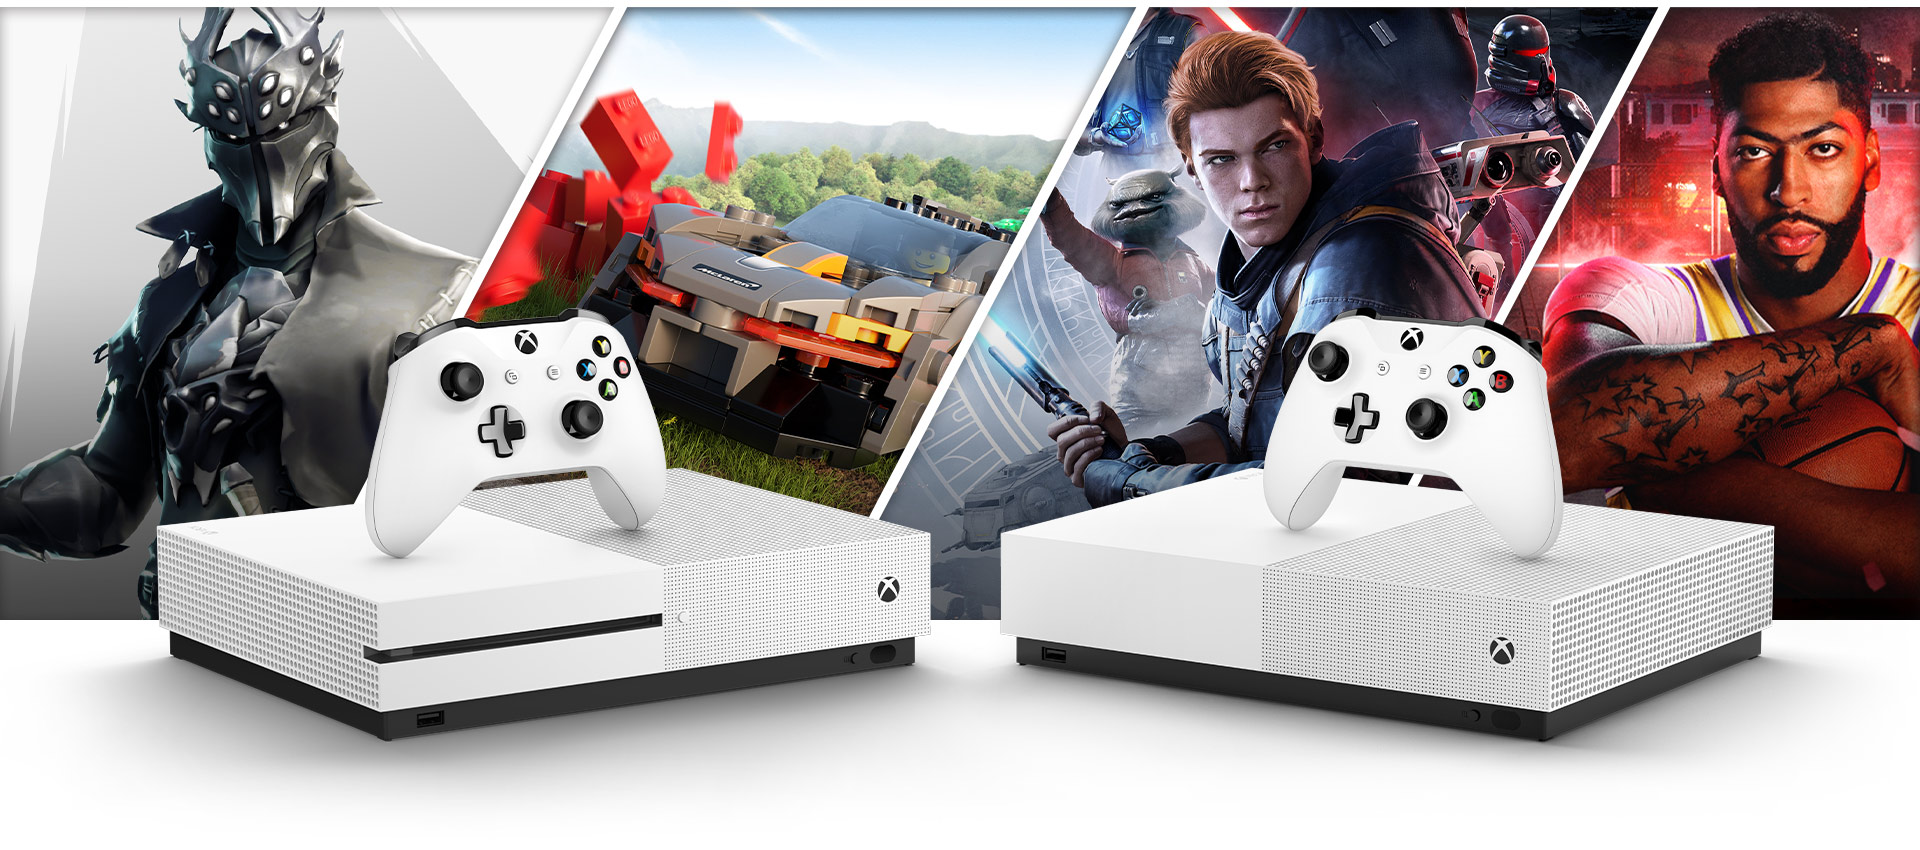 Fortnite, Forza Horizon 4, Star Wars Jedi Fallen Order and NBA 2K20 graphics behind an Xbox One S and Xbox One S All Digital Edition